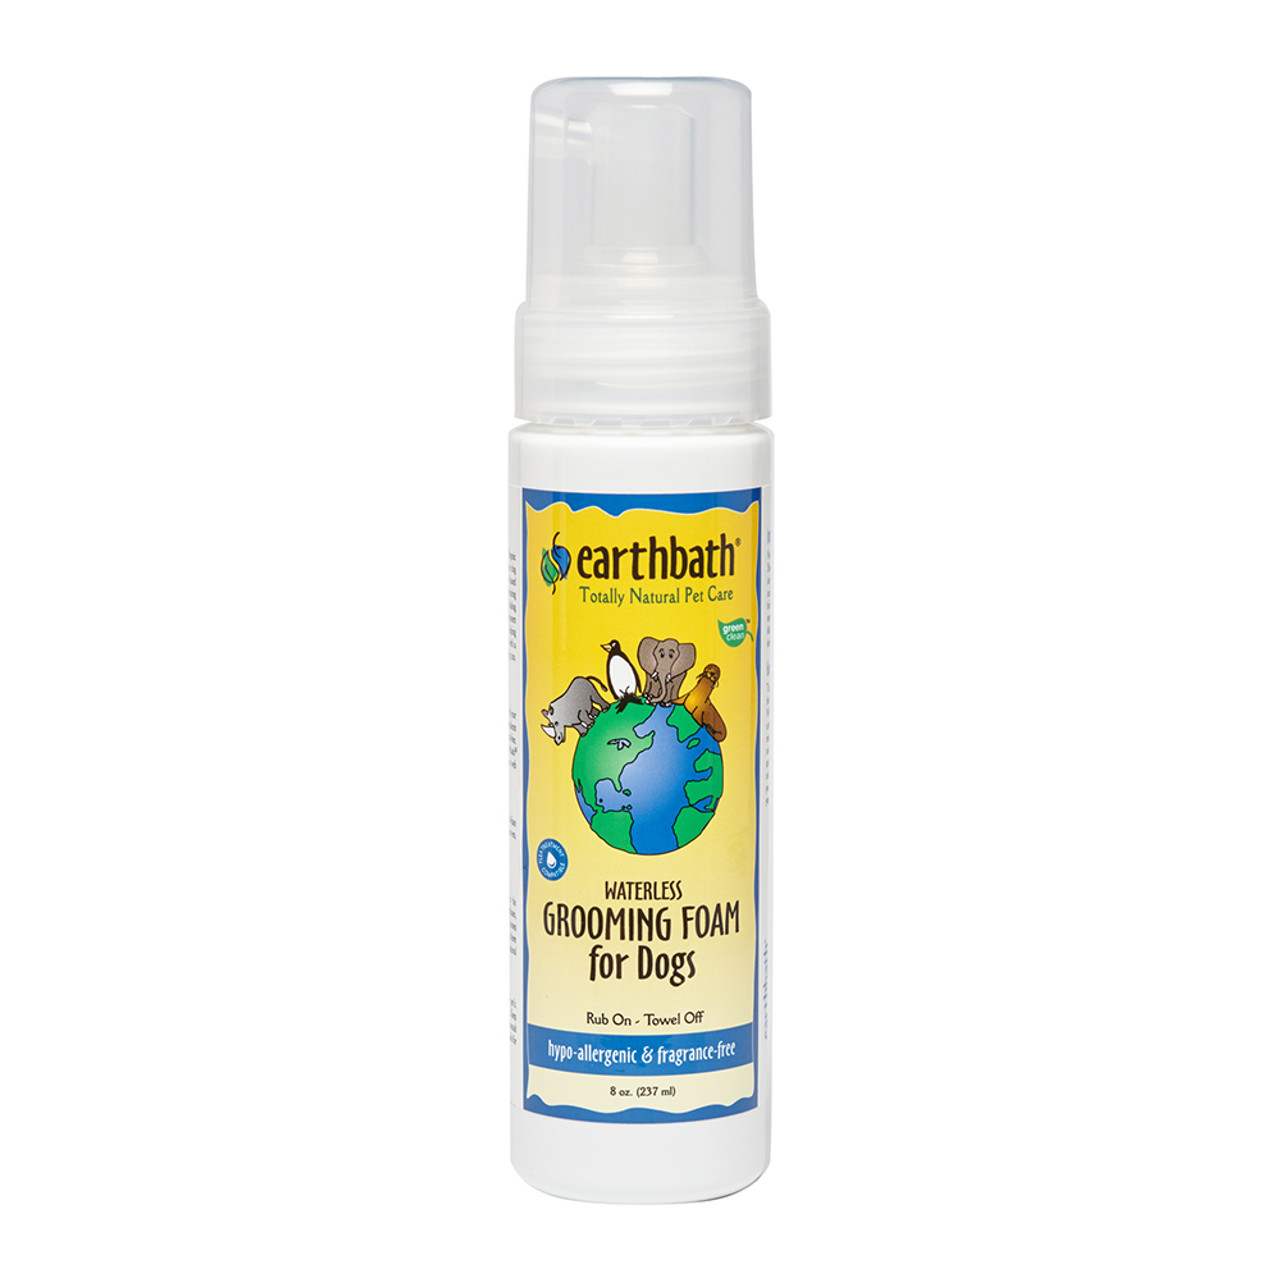 Earthbath Hypo-Allergenic Grooming Foam for Dogs